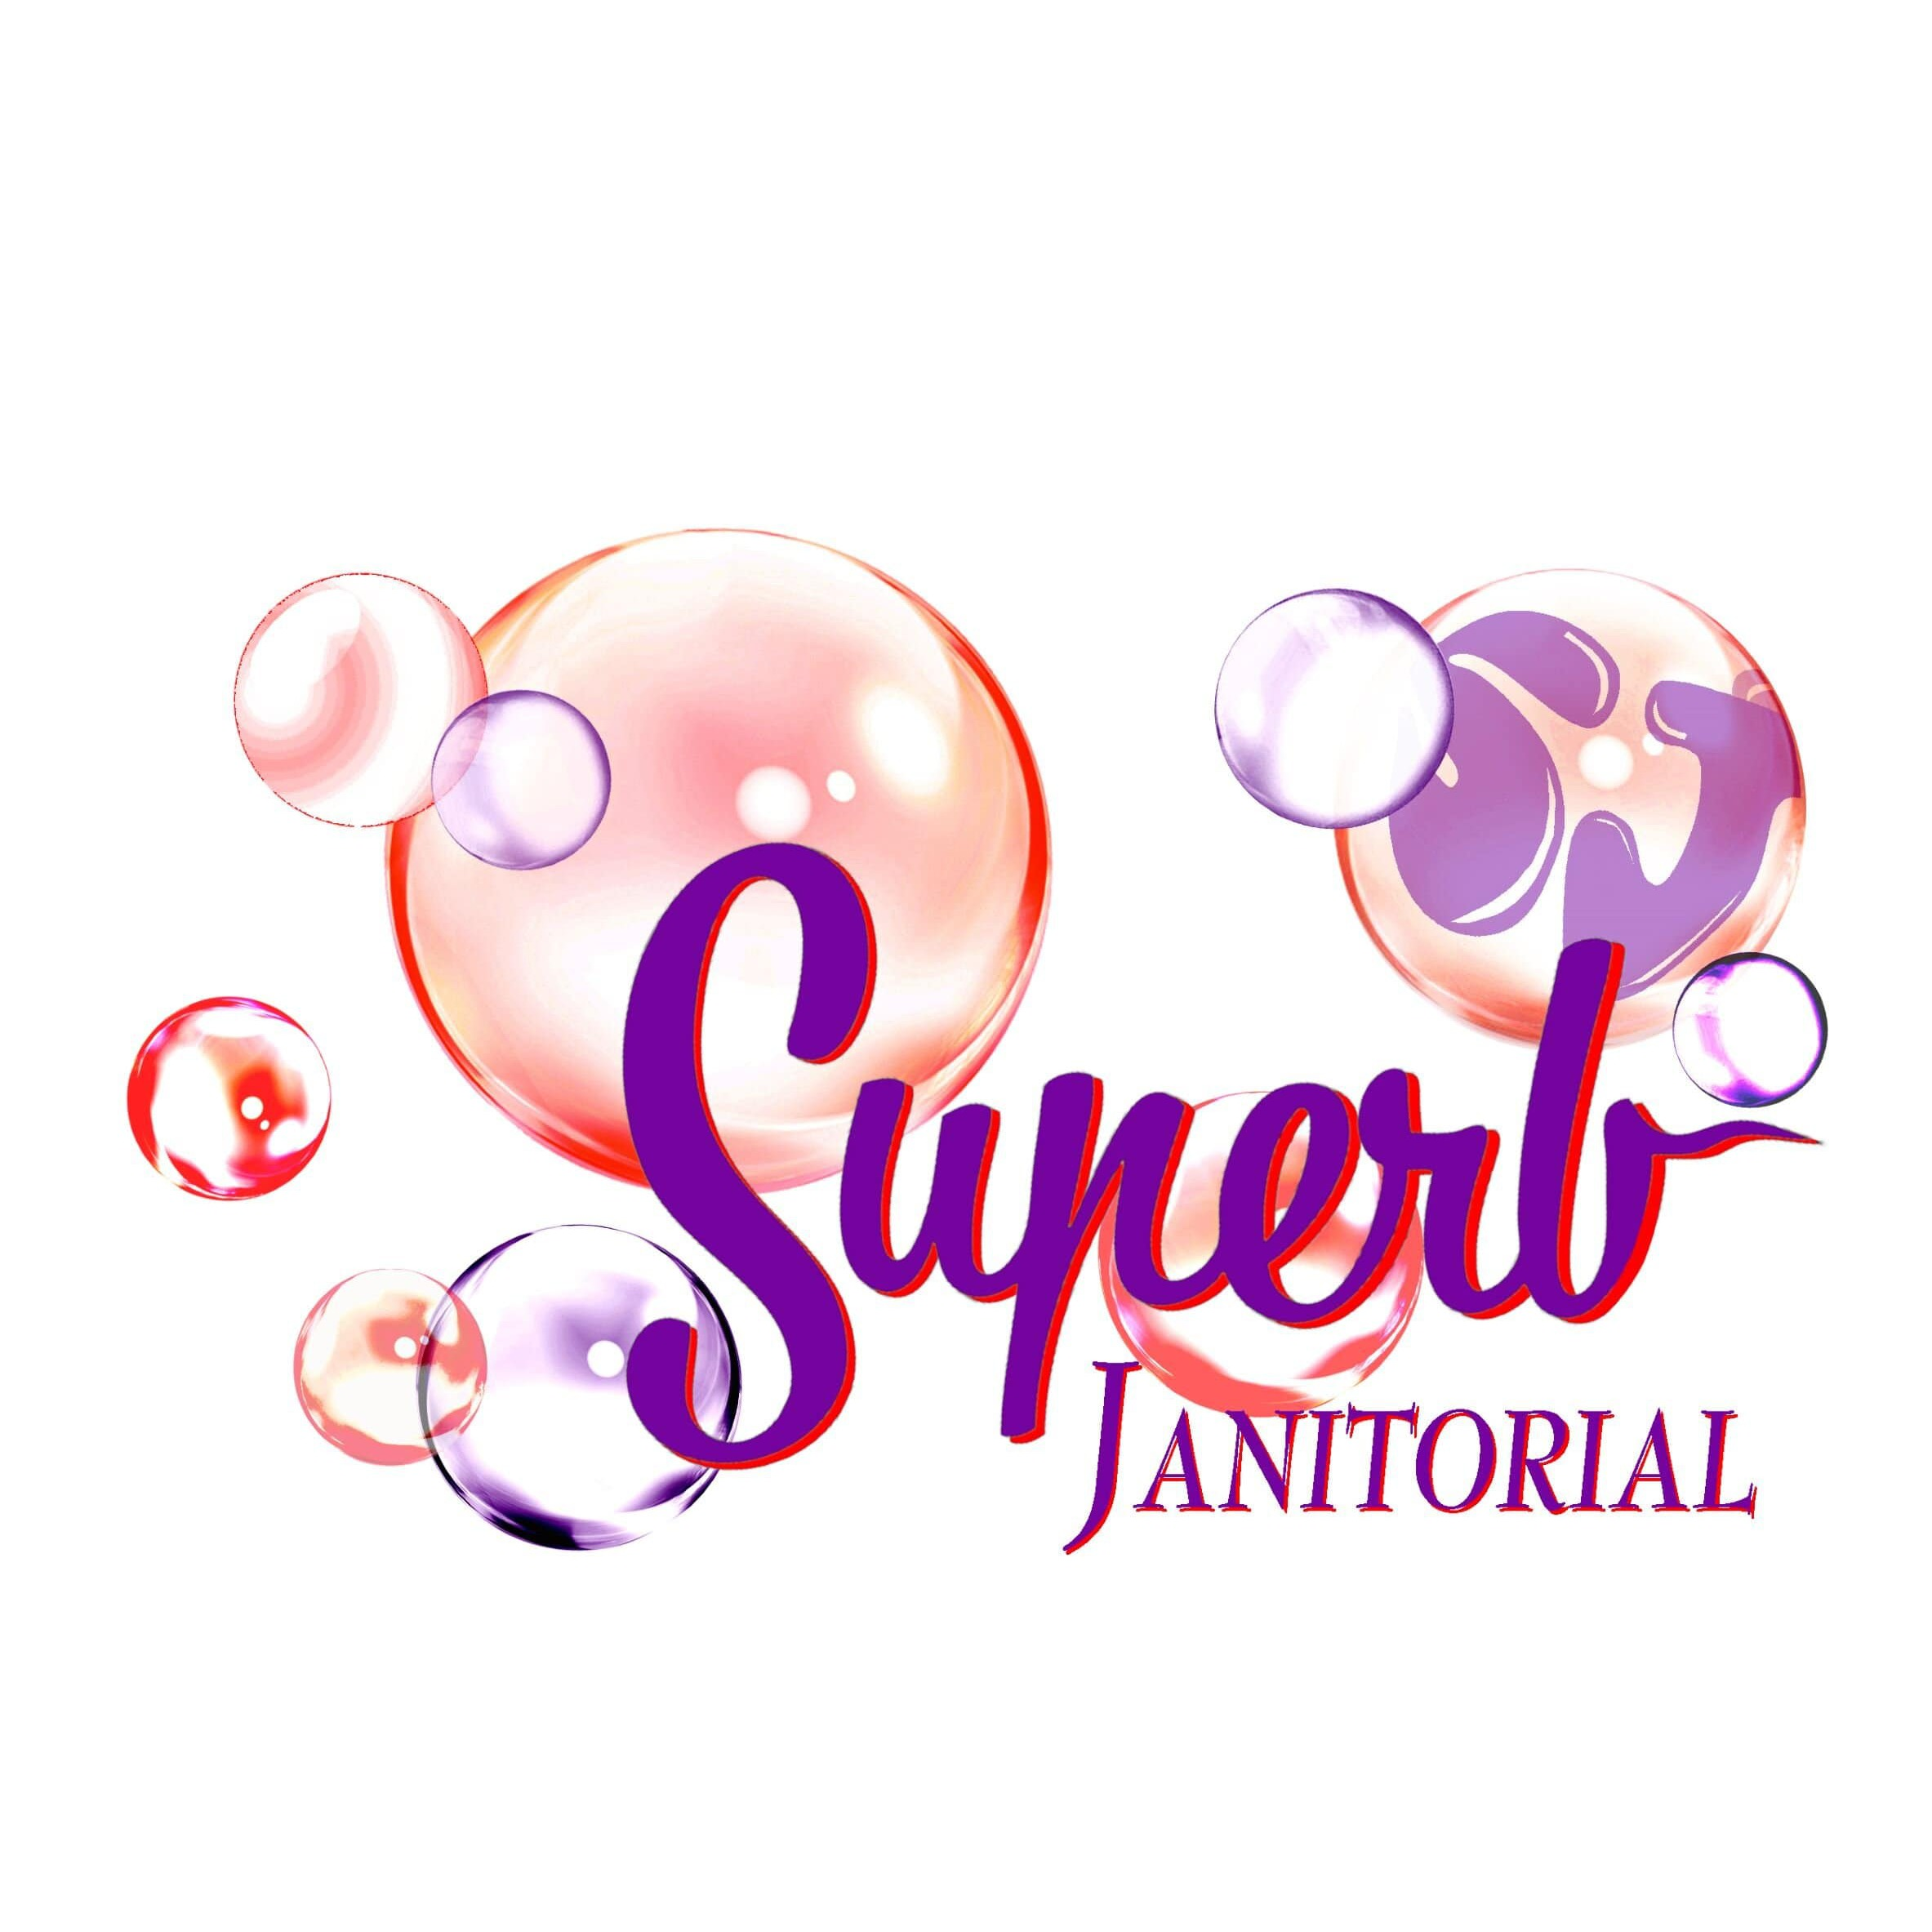 Superb Janitorial